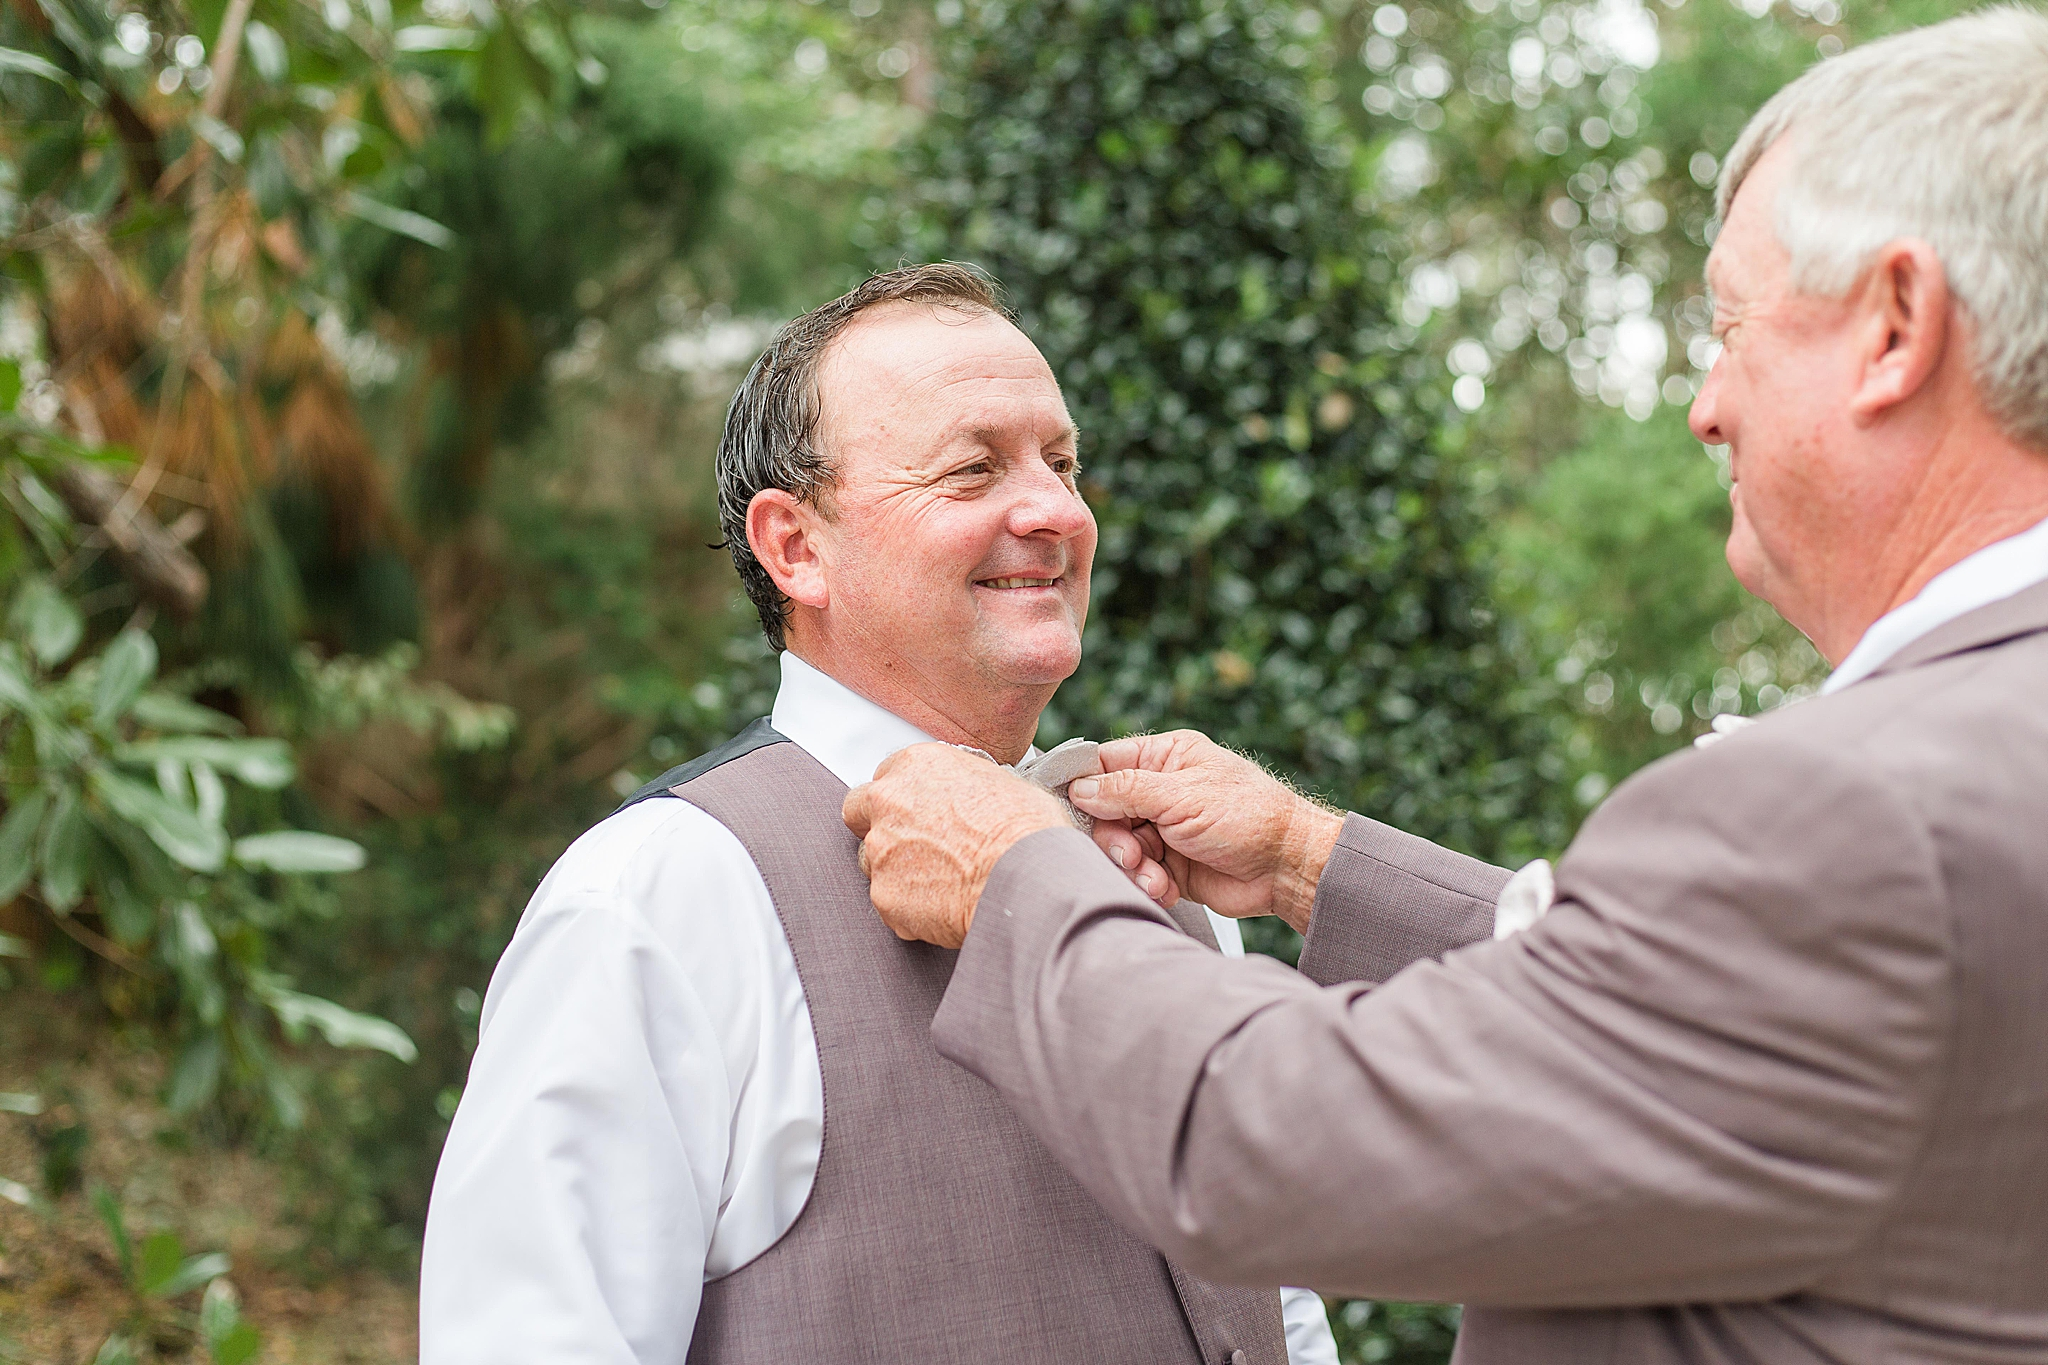 father of groom adjusts tie for groom, tips for groom and groomsmen attire